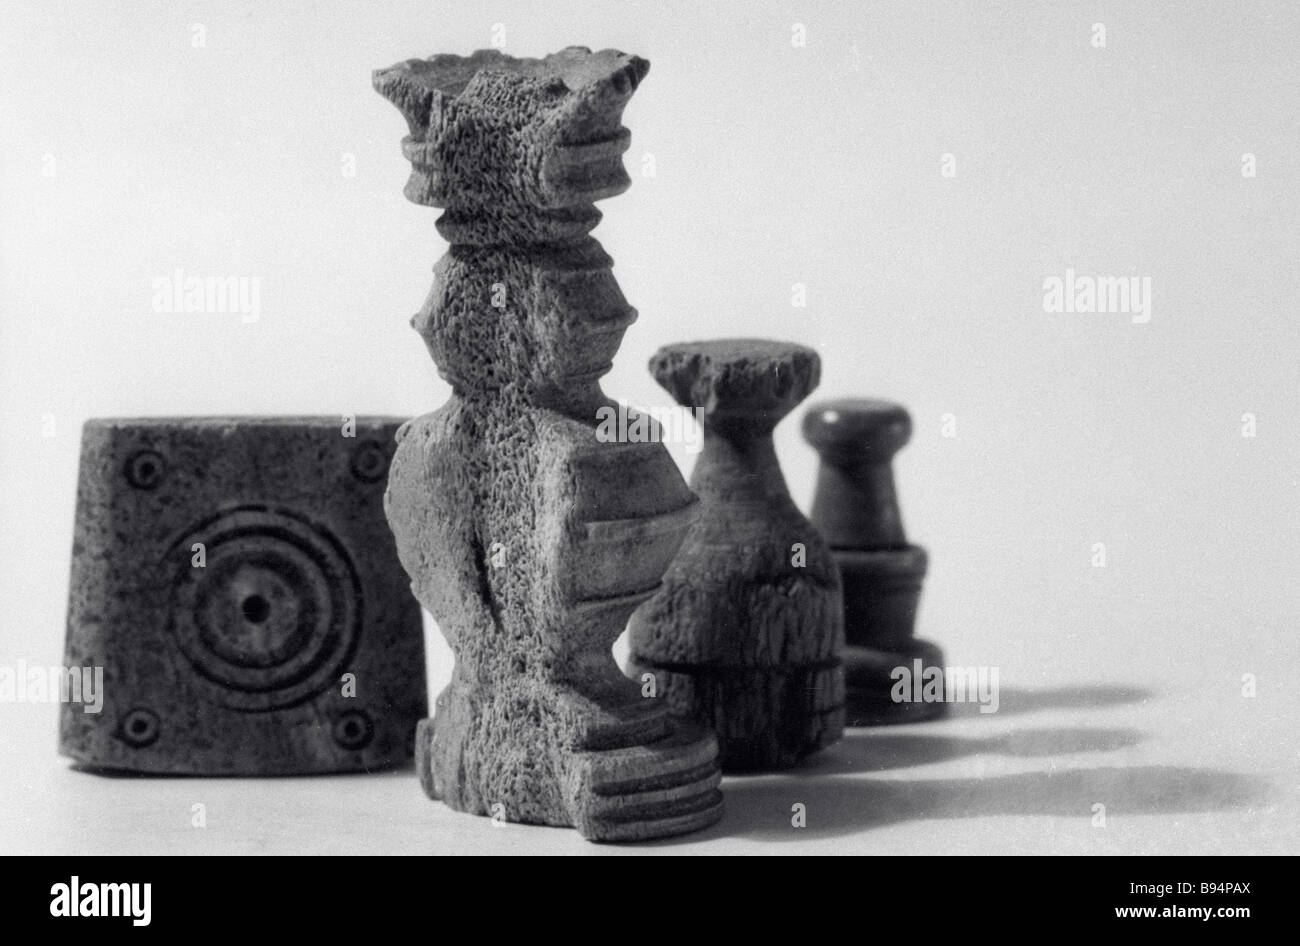 These 16th or early 17th century chessmen and a die are exhibited in the Moscow History and Reconstruction Museum - Stock Image